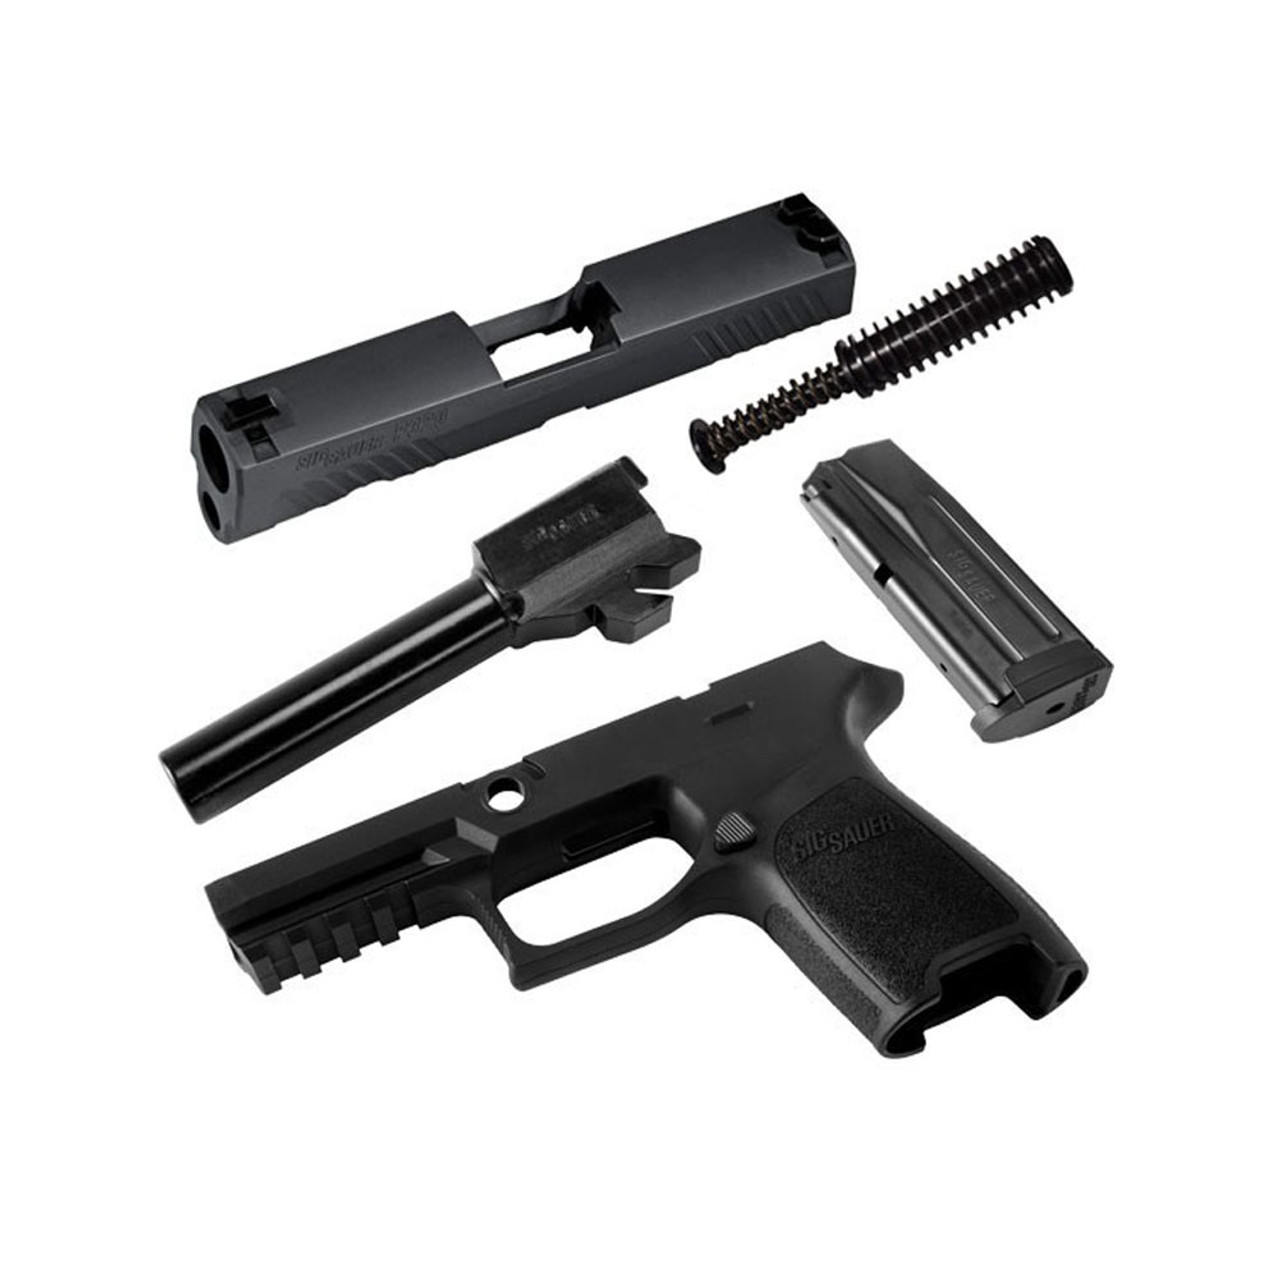 medium resolution of sig sauer p320 compact 9mm 15rd mag black caliber x change kit calx